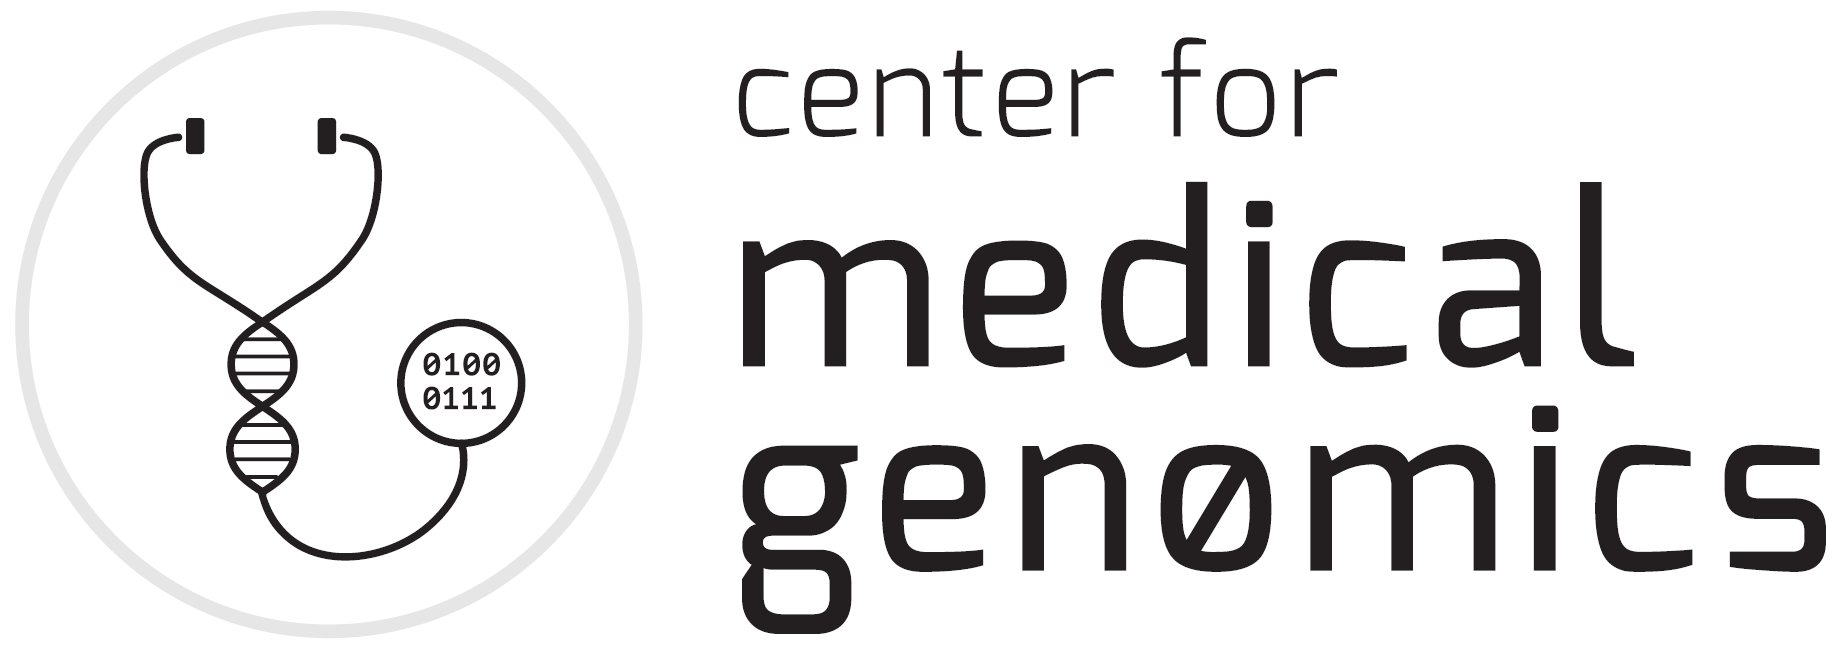 Center for Medical Genomics